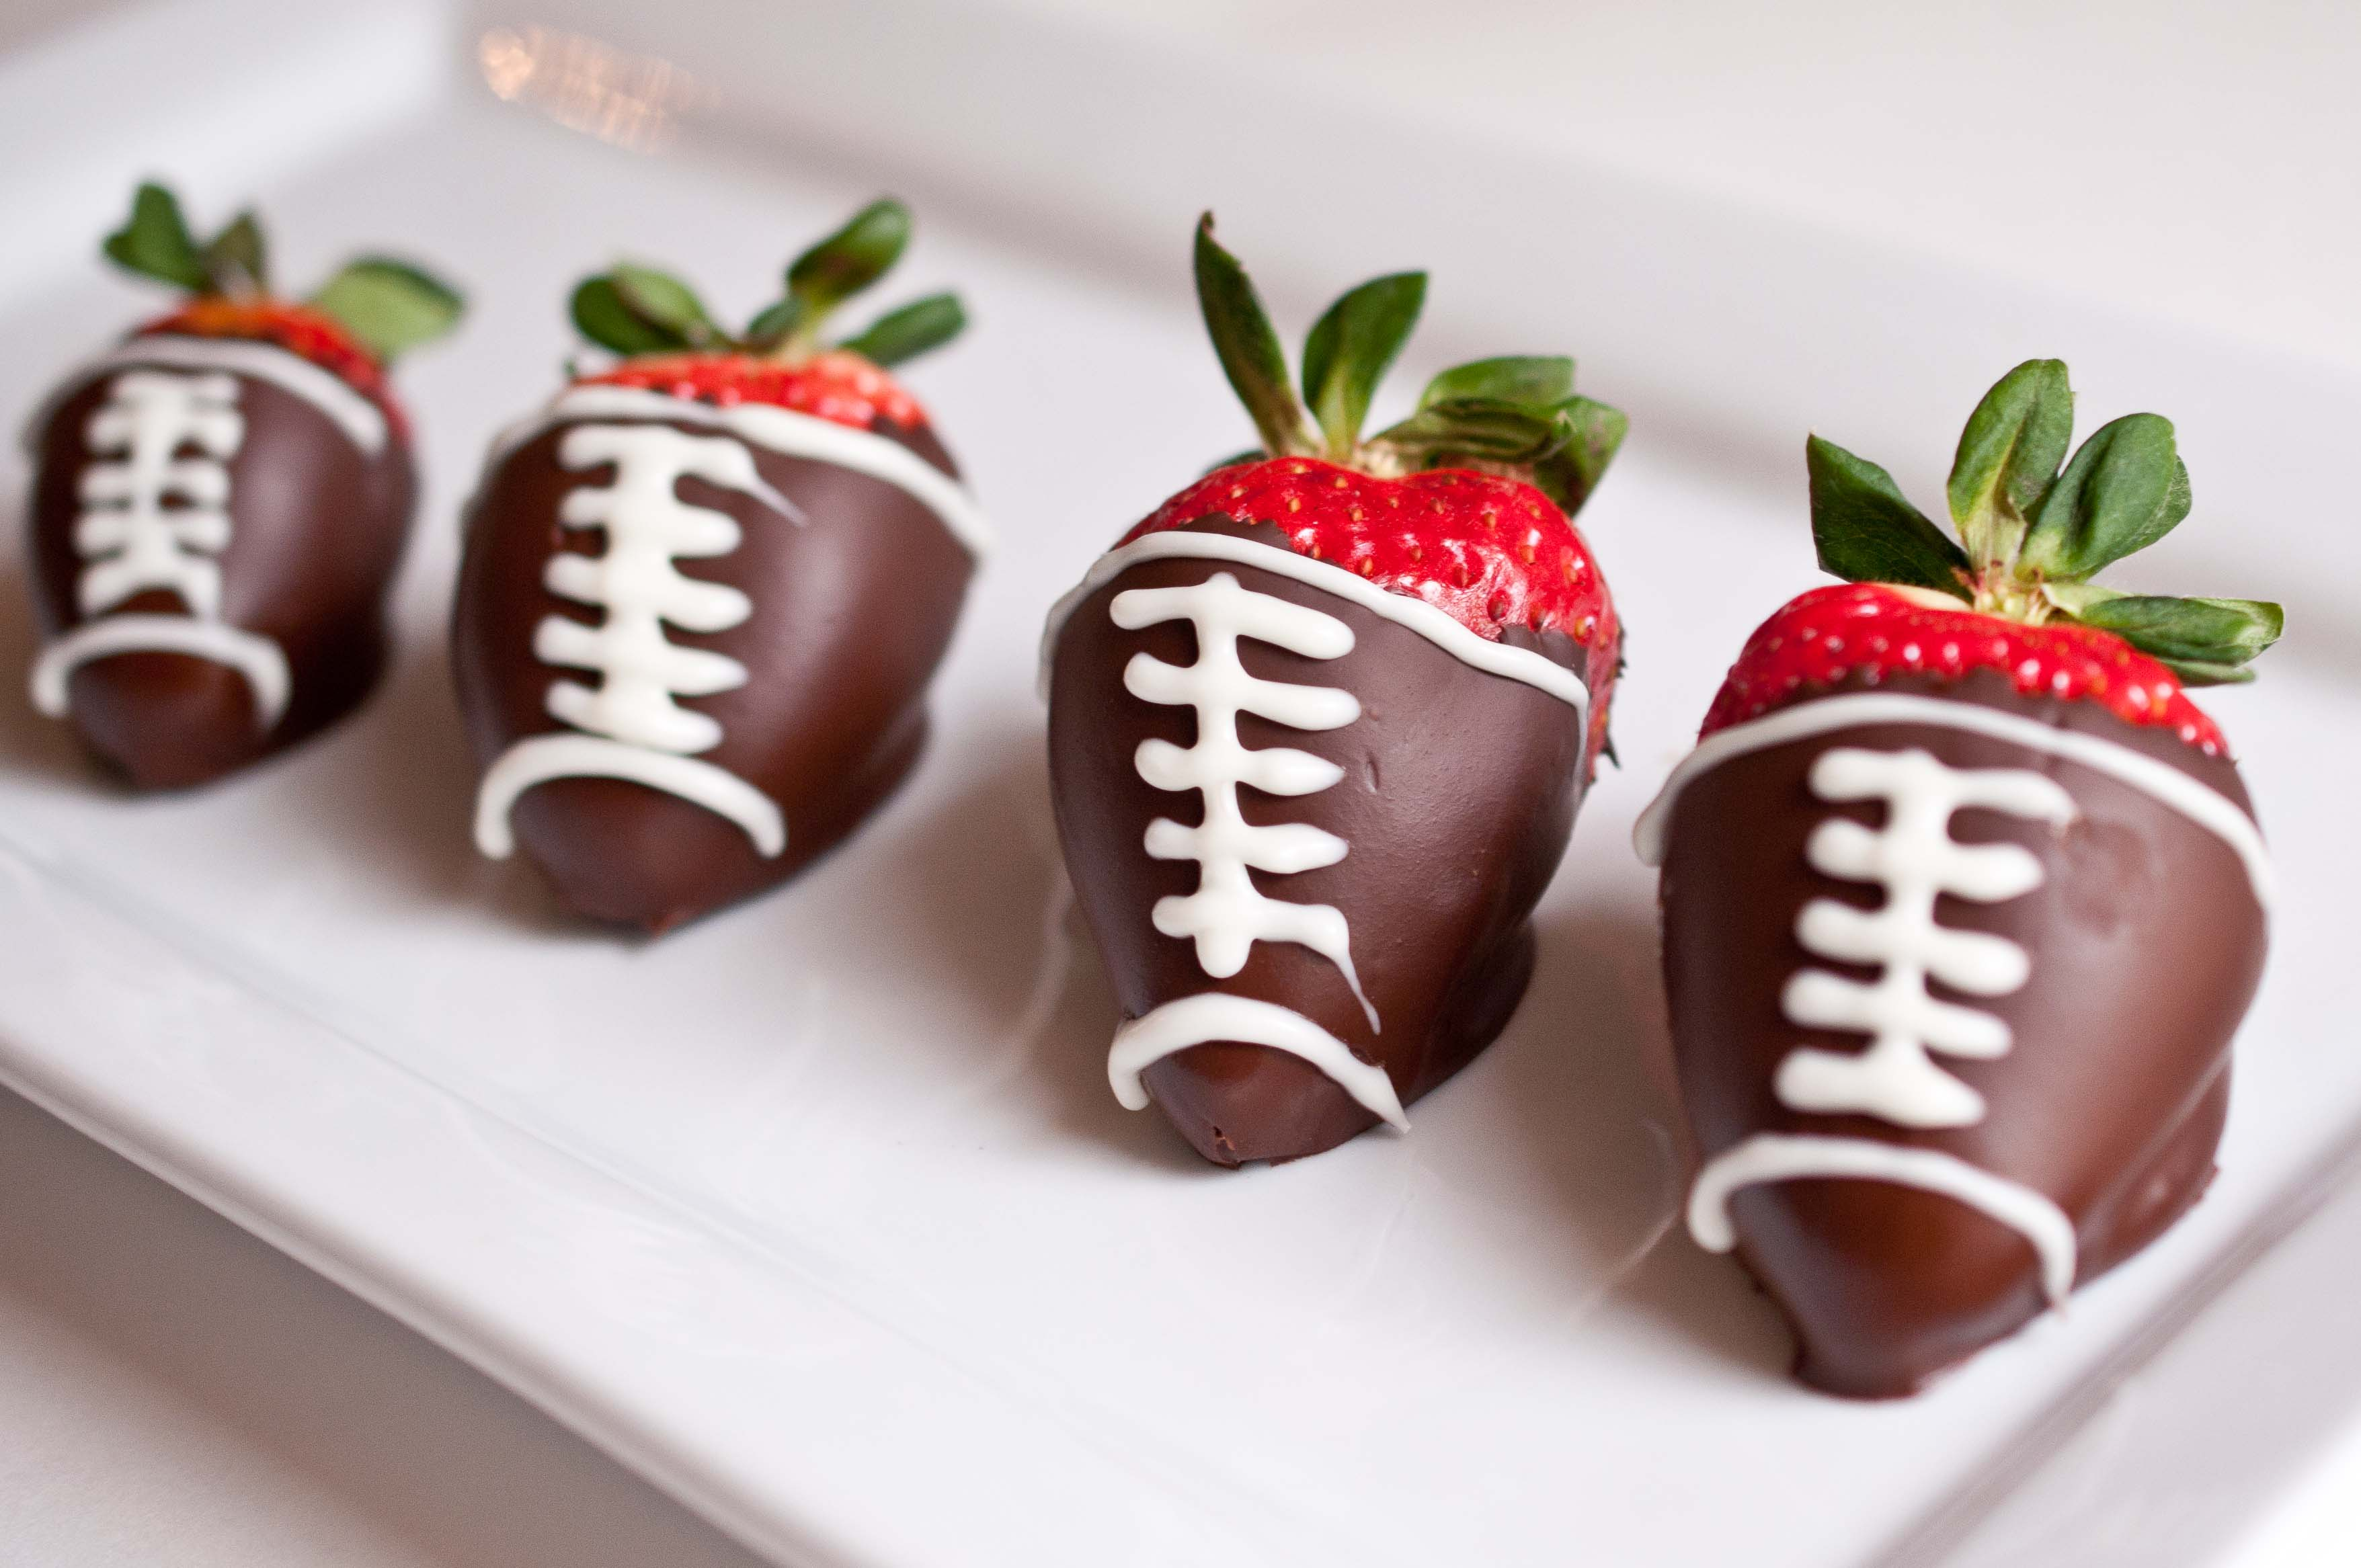 Chocolate strawberries12